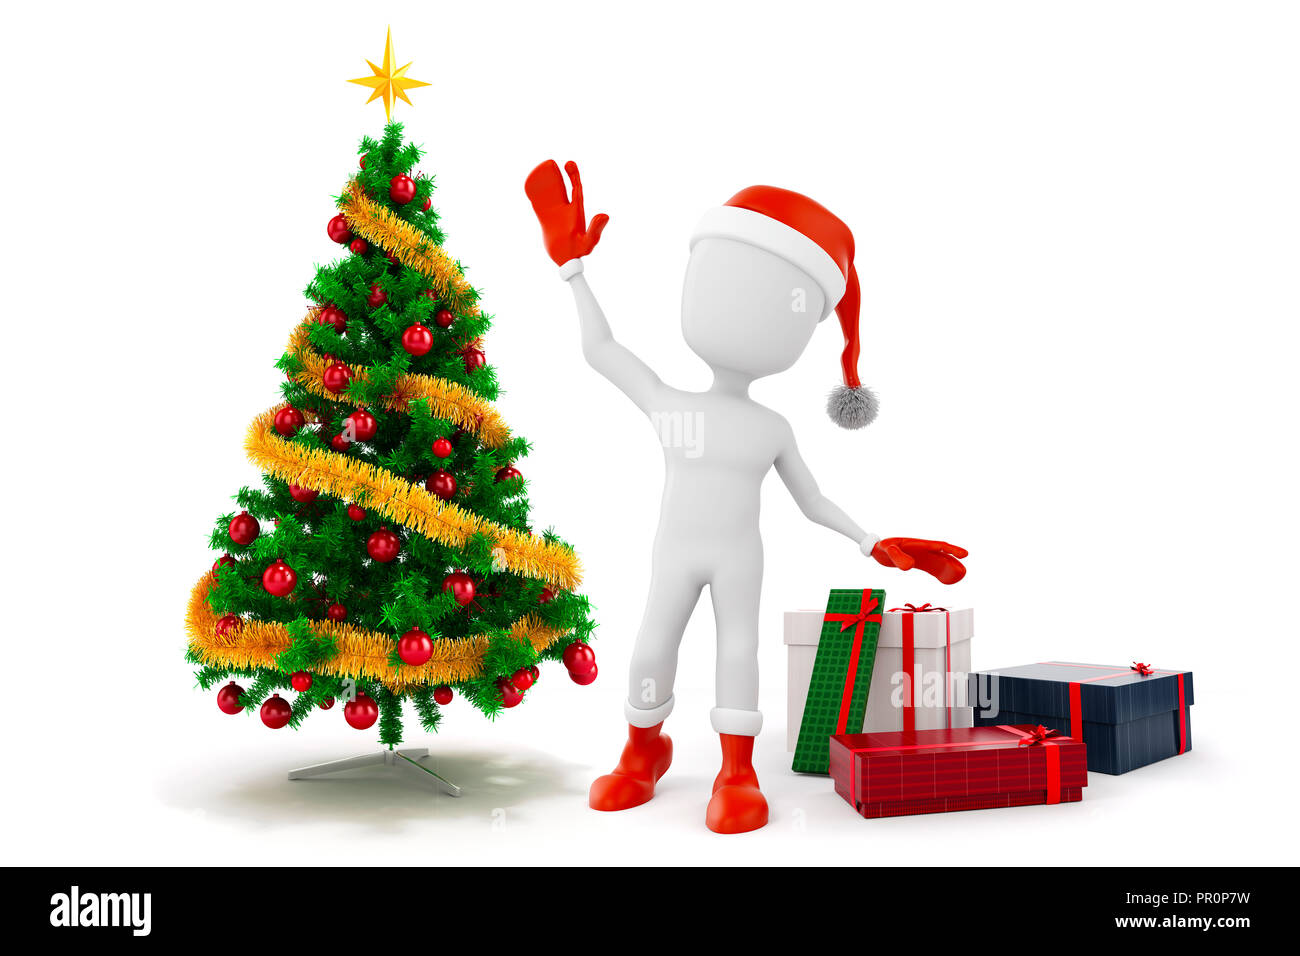 Christmas Tree White Background.3d Man Santa Claus With Christmas Tree And Presents On White